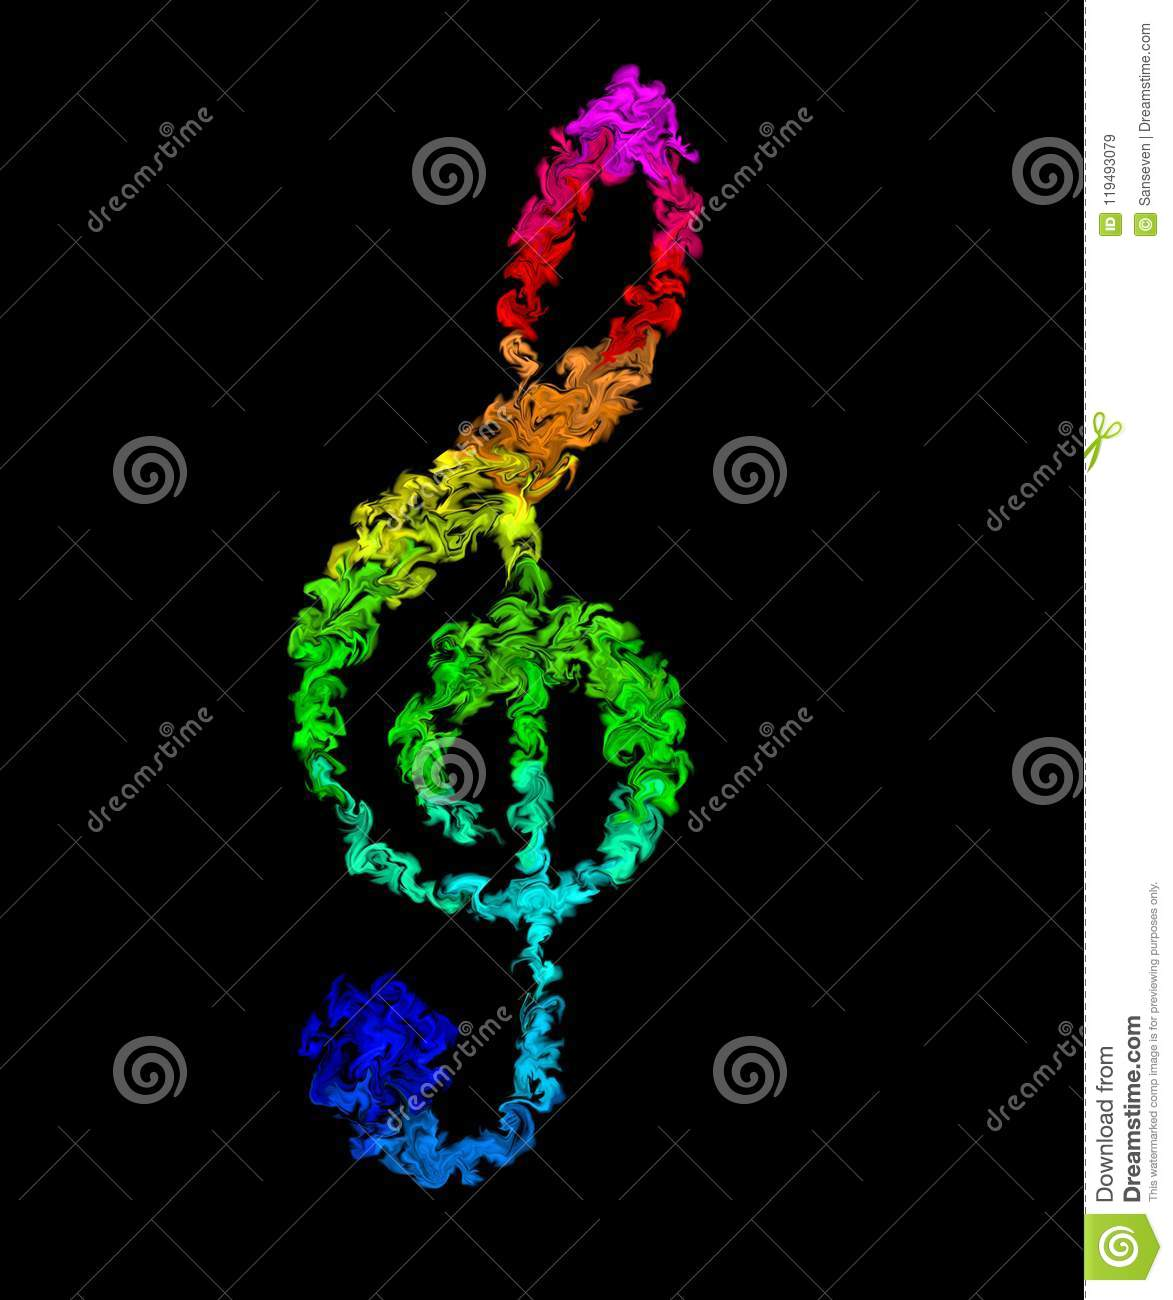 Music Note Pulsing Smeared Rainbow Colors Fire Design Stock